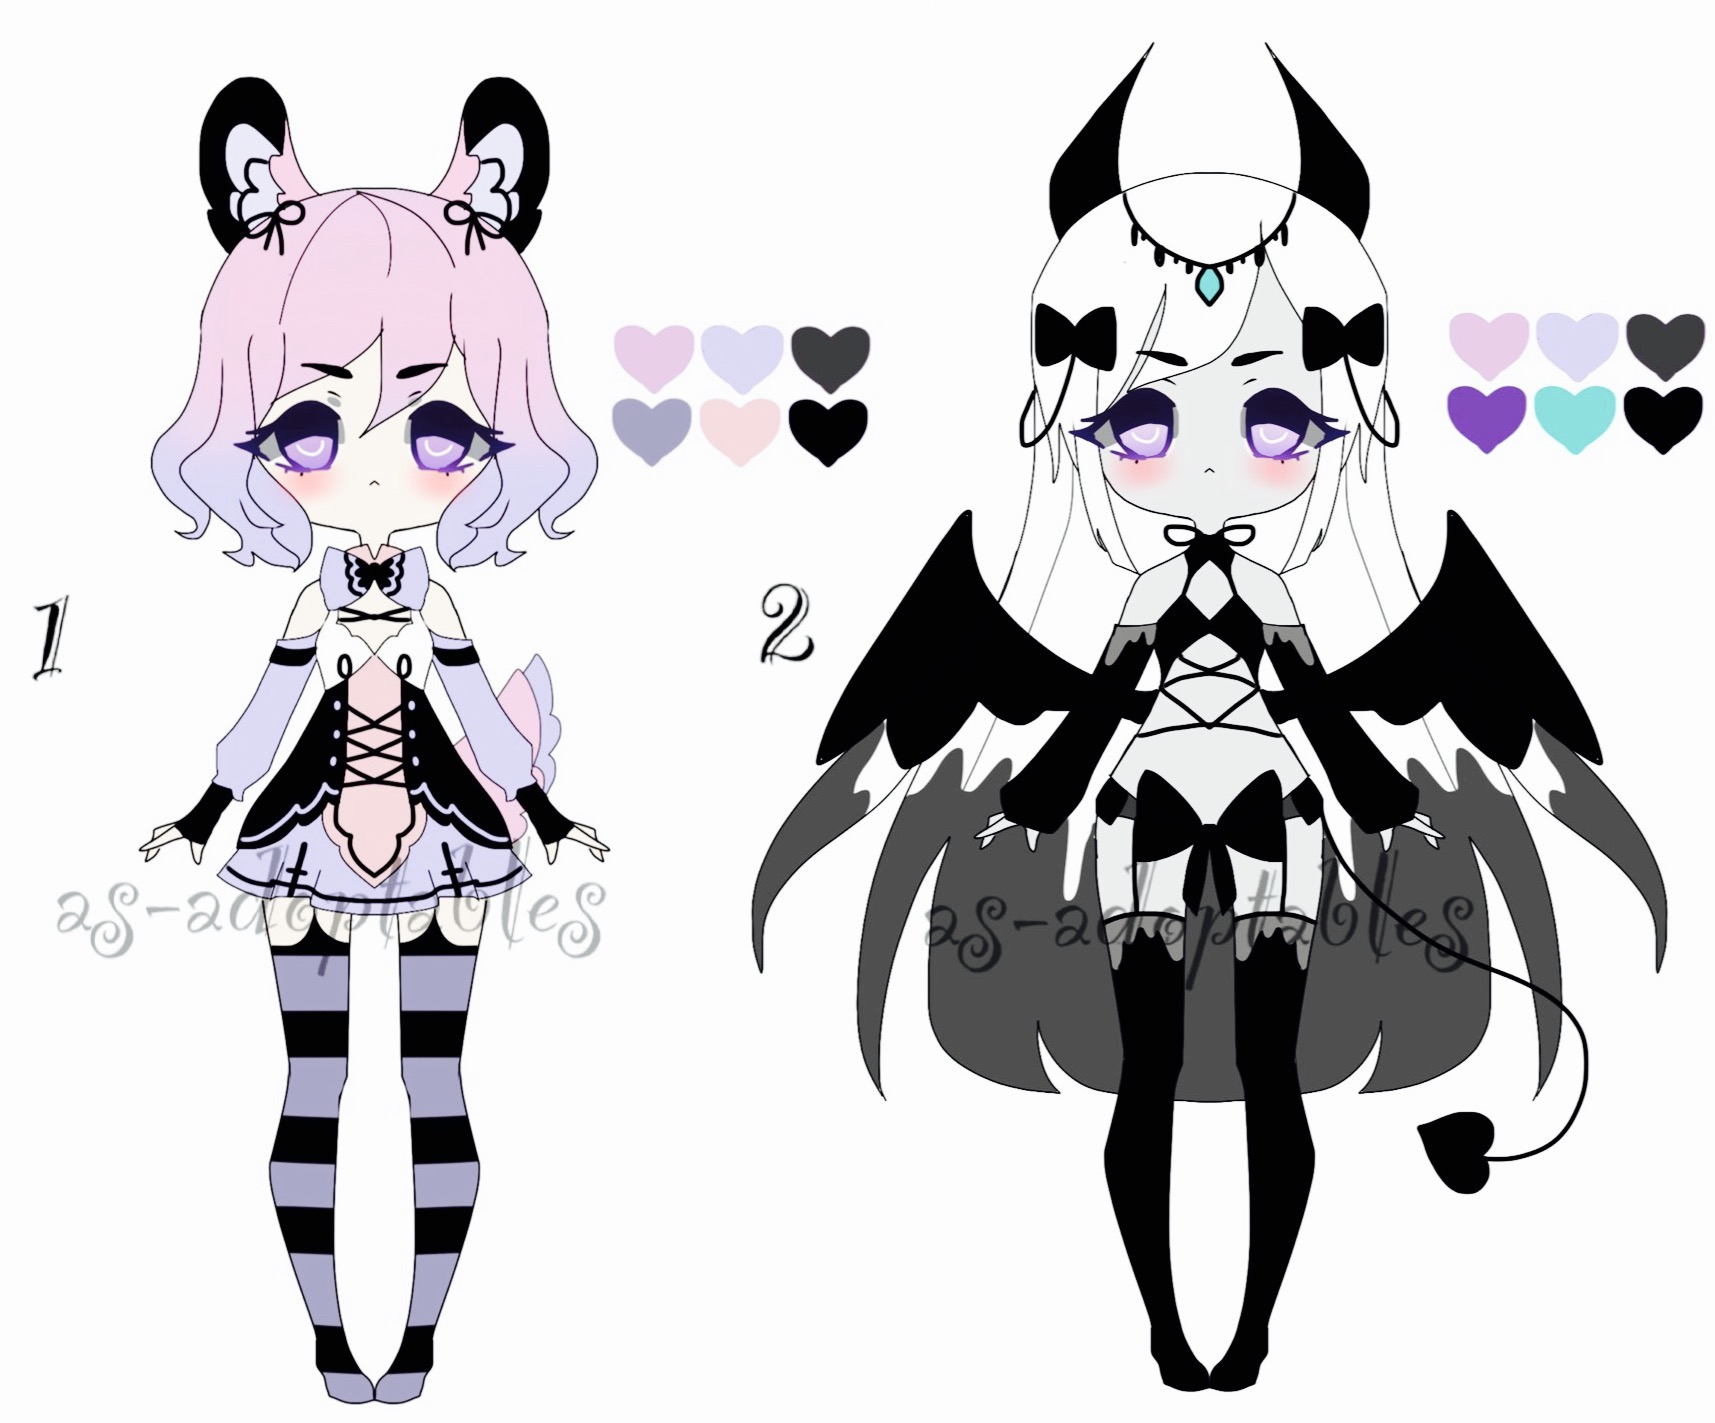 Pastel goth adoptable batch CLOSED by AS-Adoptables on DeviantArt